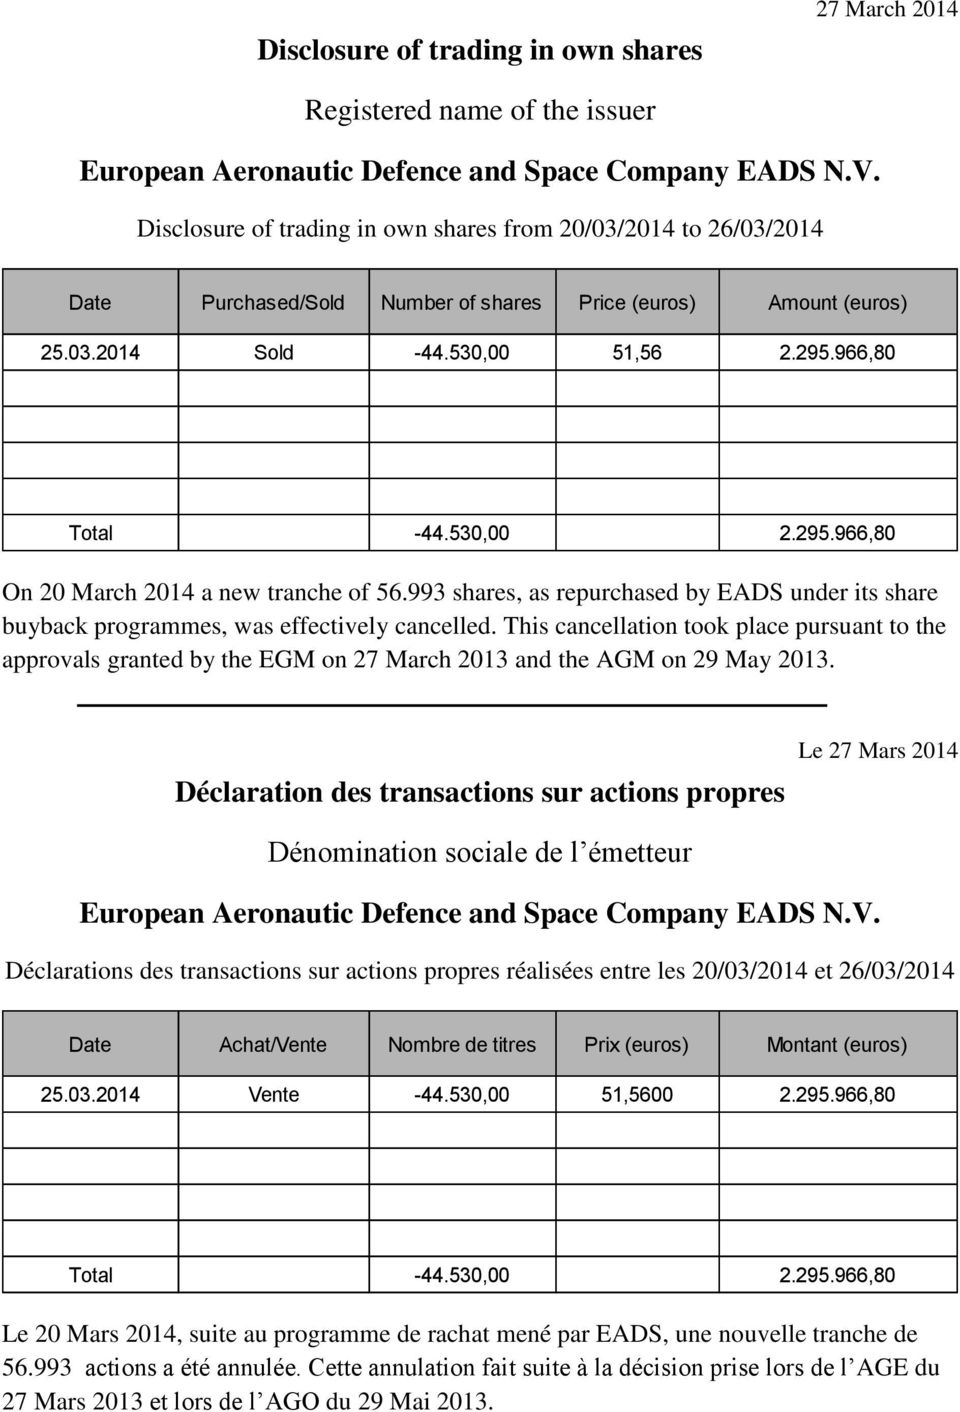 This cancellation took place pursuant to the approvals granted by the EGM on 27 March 2013 and the AGM on 29 May 2013.